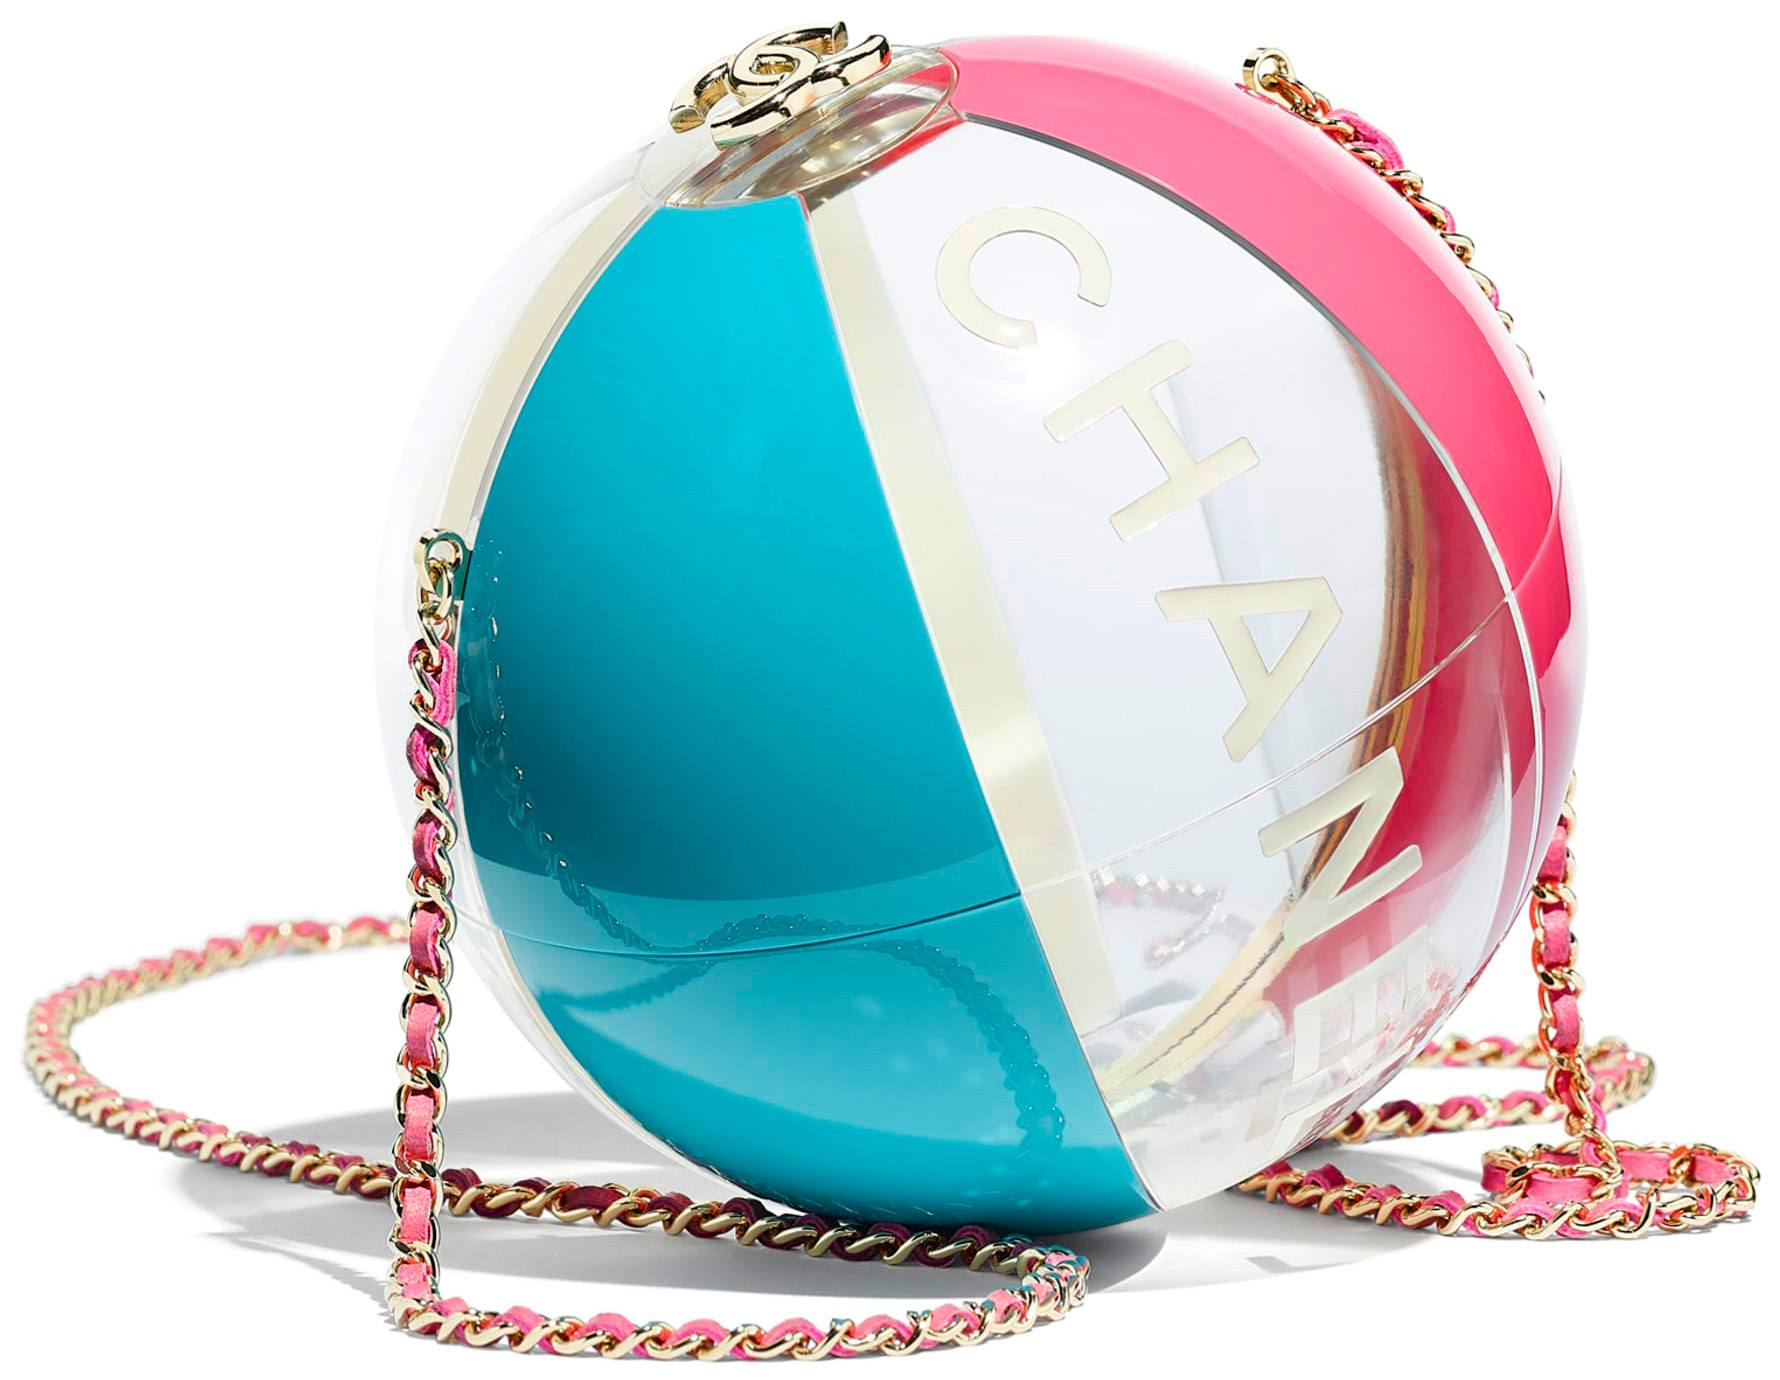 Chanel beach ball minaudiere in turqoise, pink resin and gold-tone metal